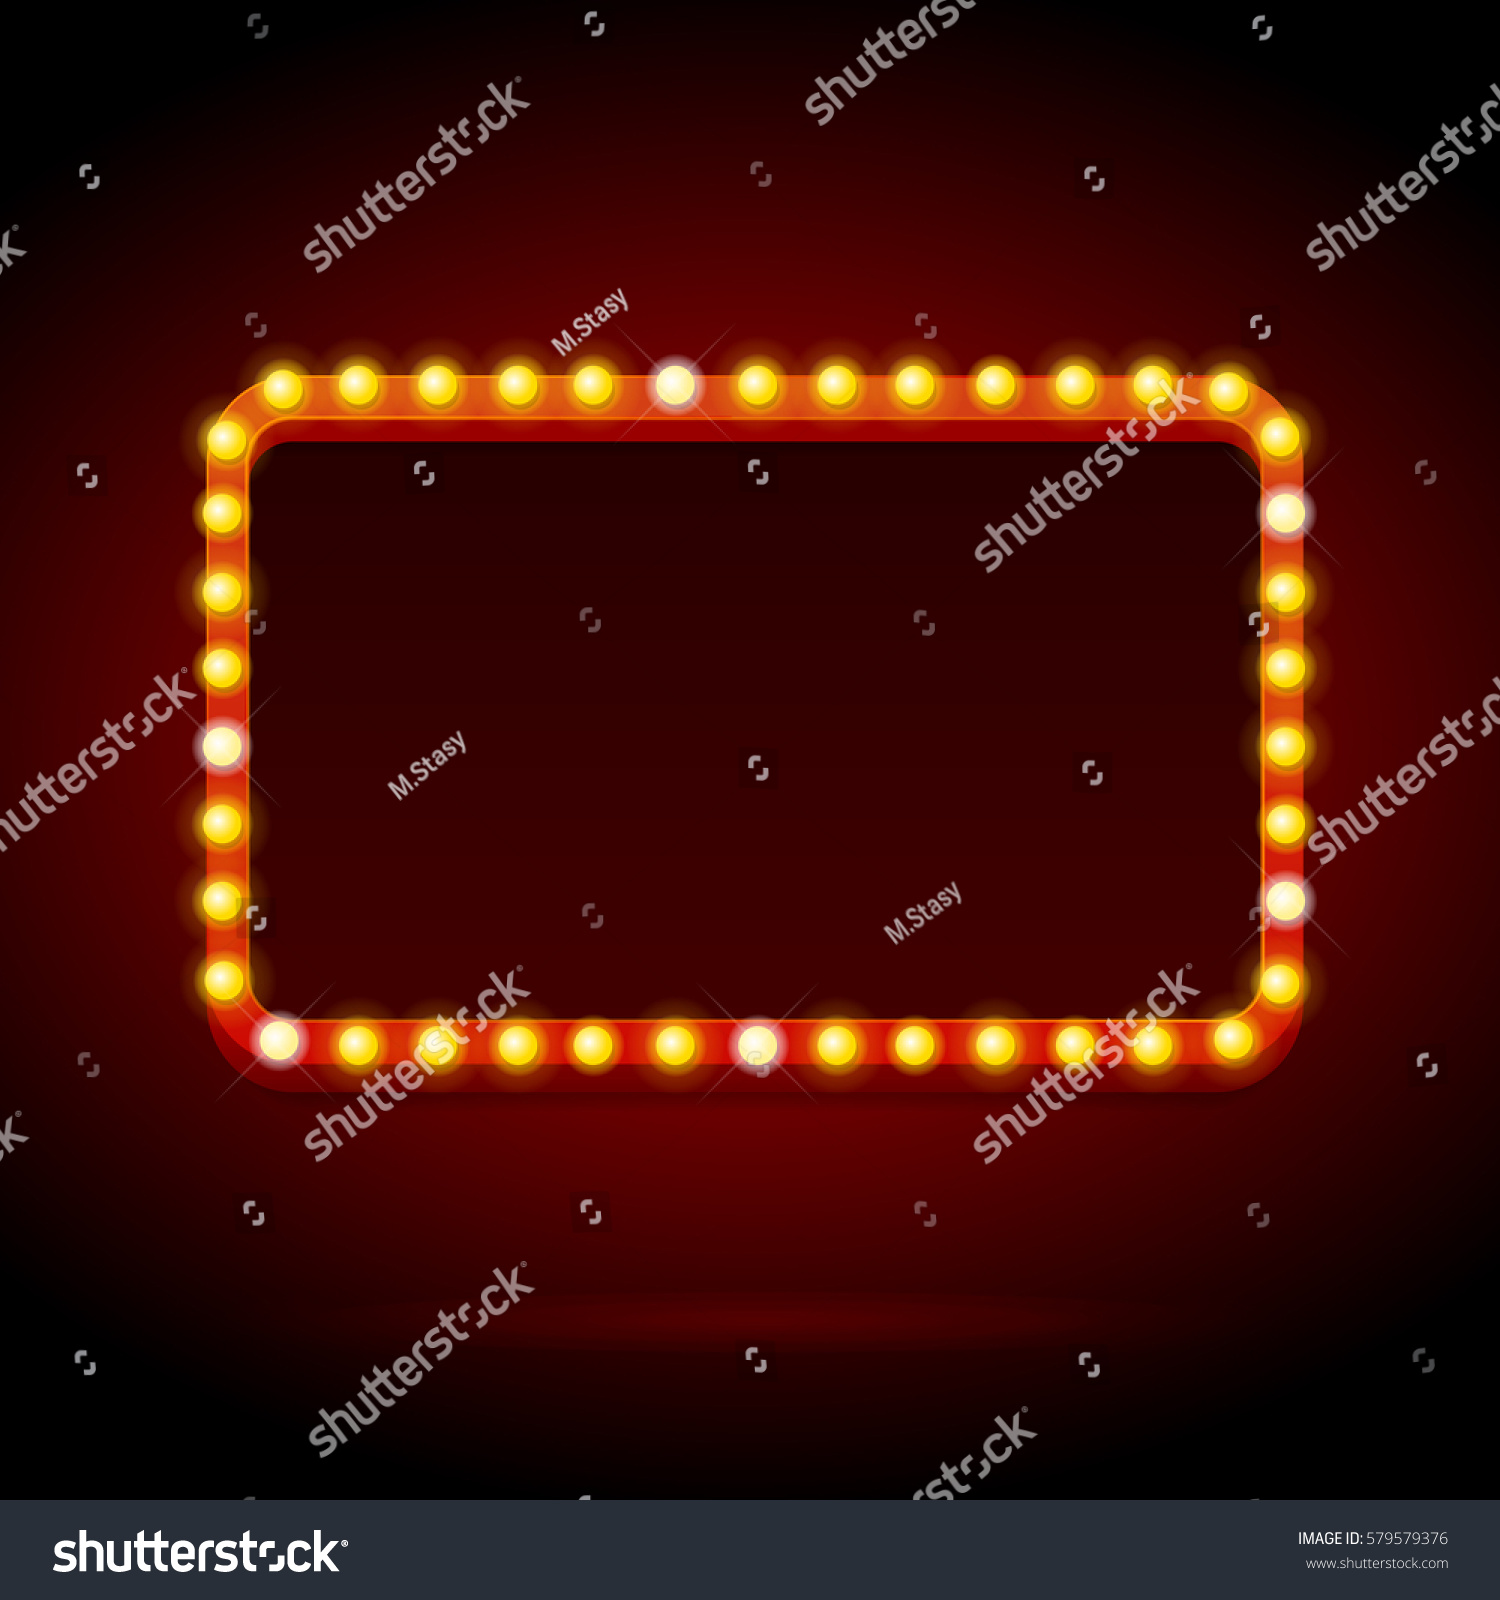 Light bulbs vintage neon glow banner vector de stock579579376 light bulbs vintage neon glow banner vector de stock579579376 shutterstock aloadofball Gallery